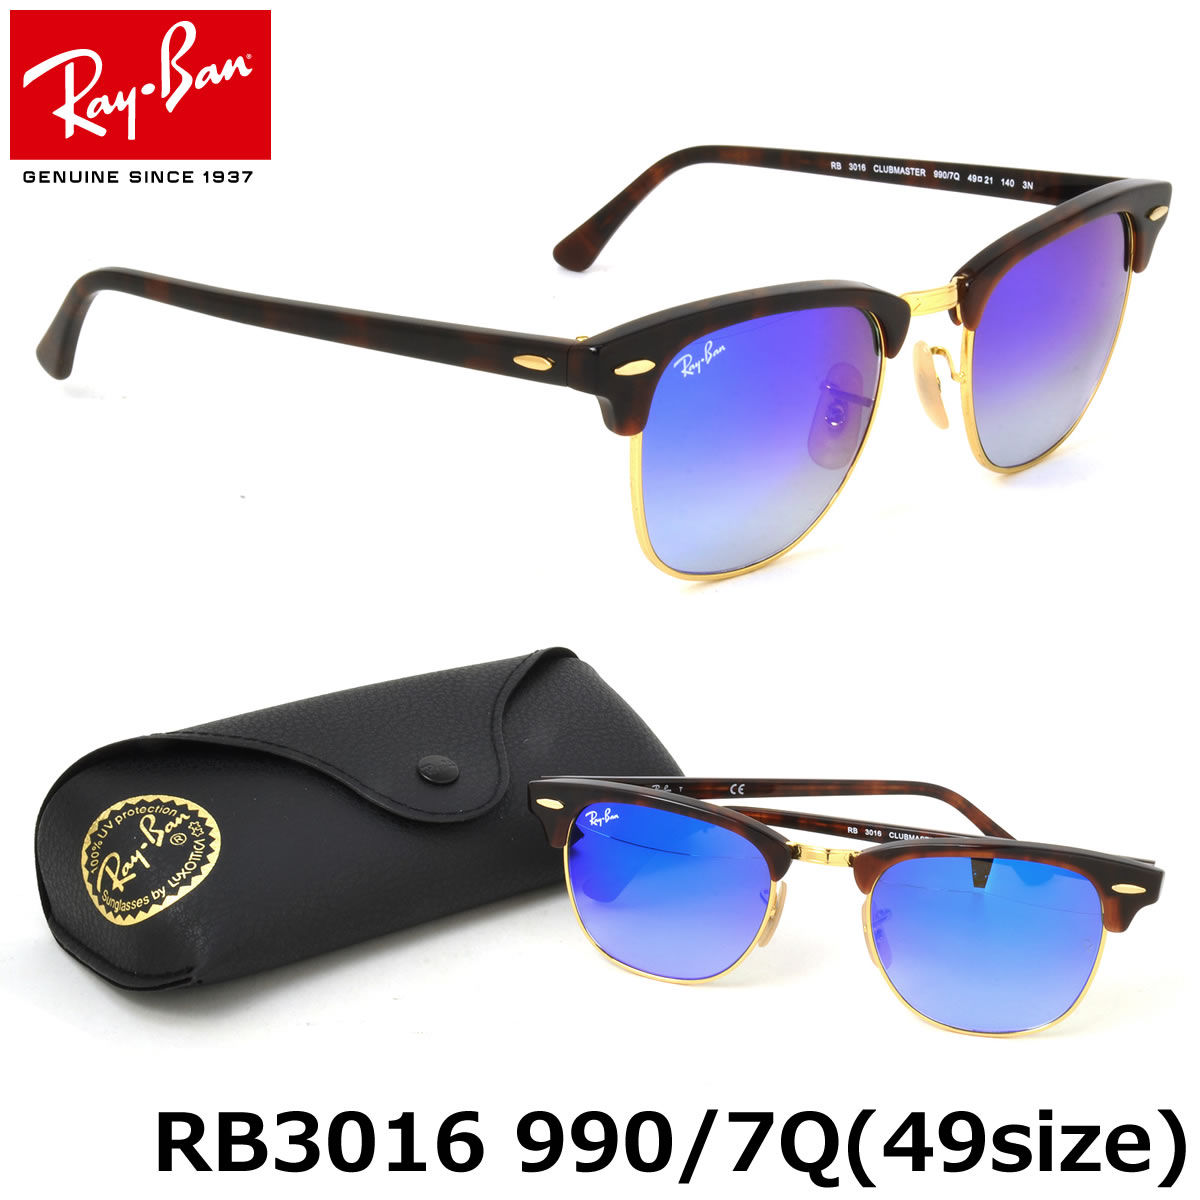 625b046839 Optical Shop Thats  Ray-Ban Sunglasses RB3016 990 7Q 49size ...